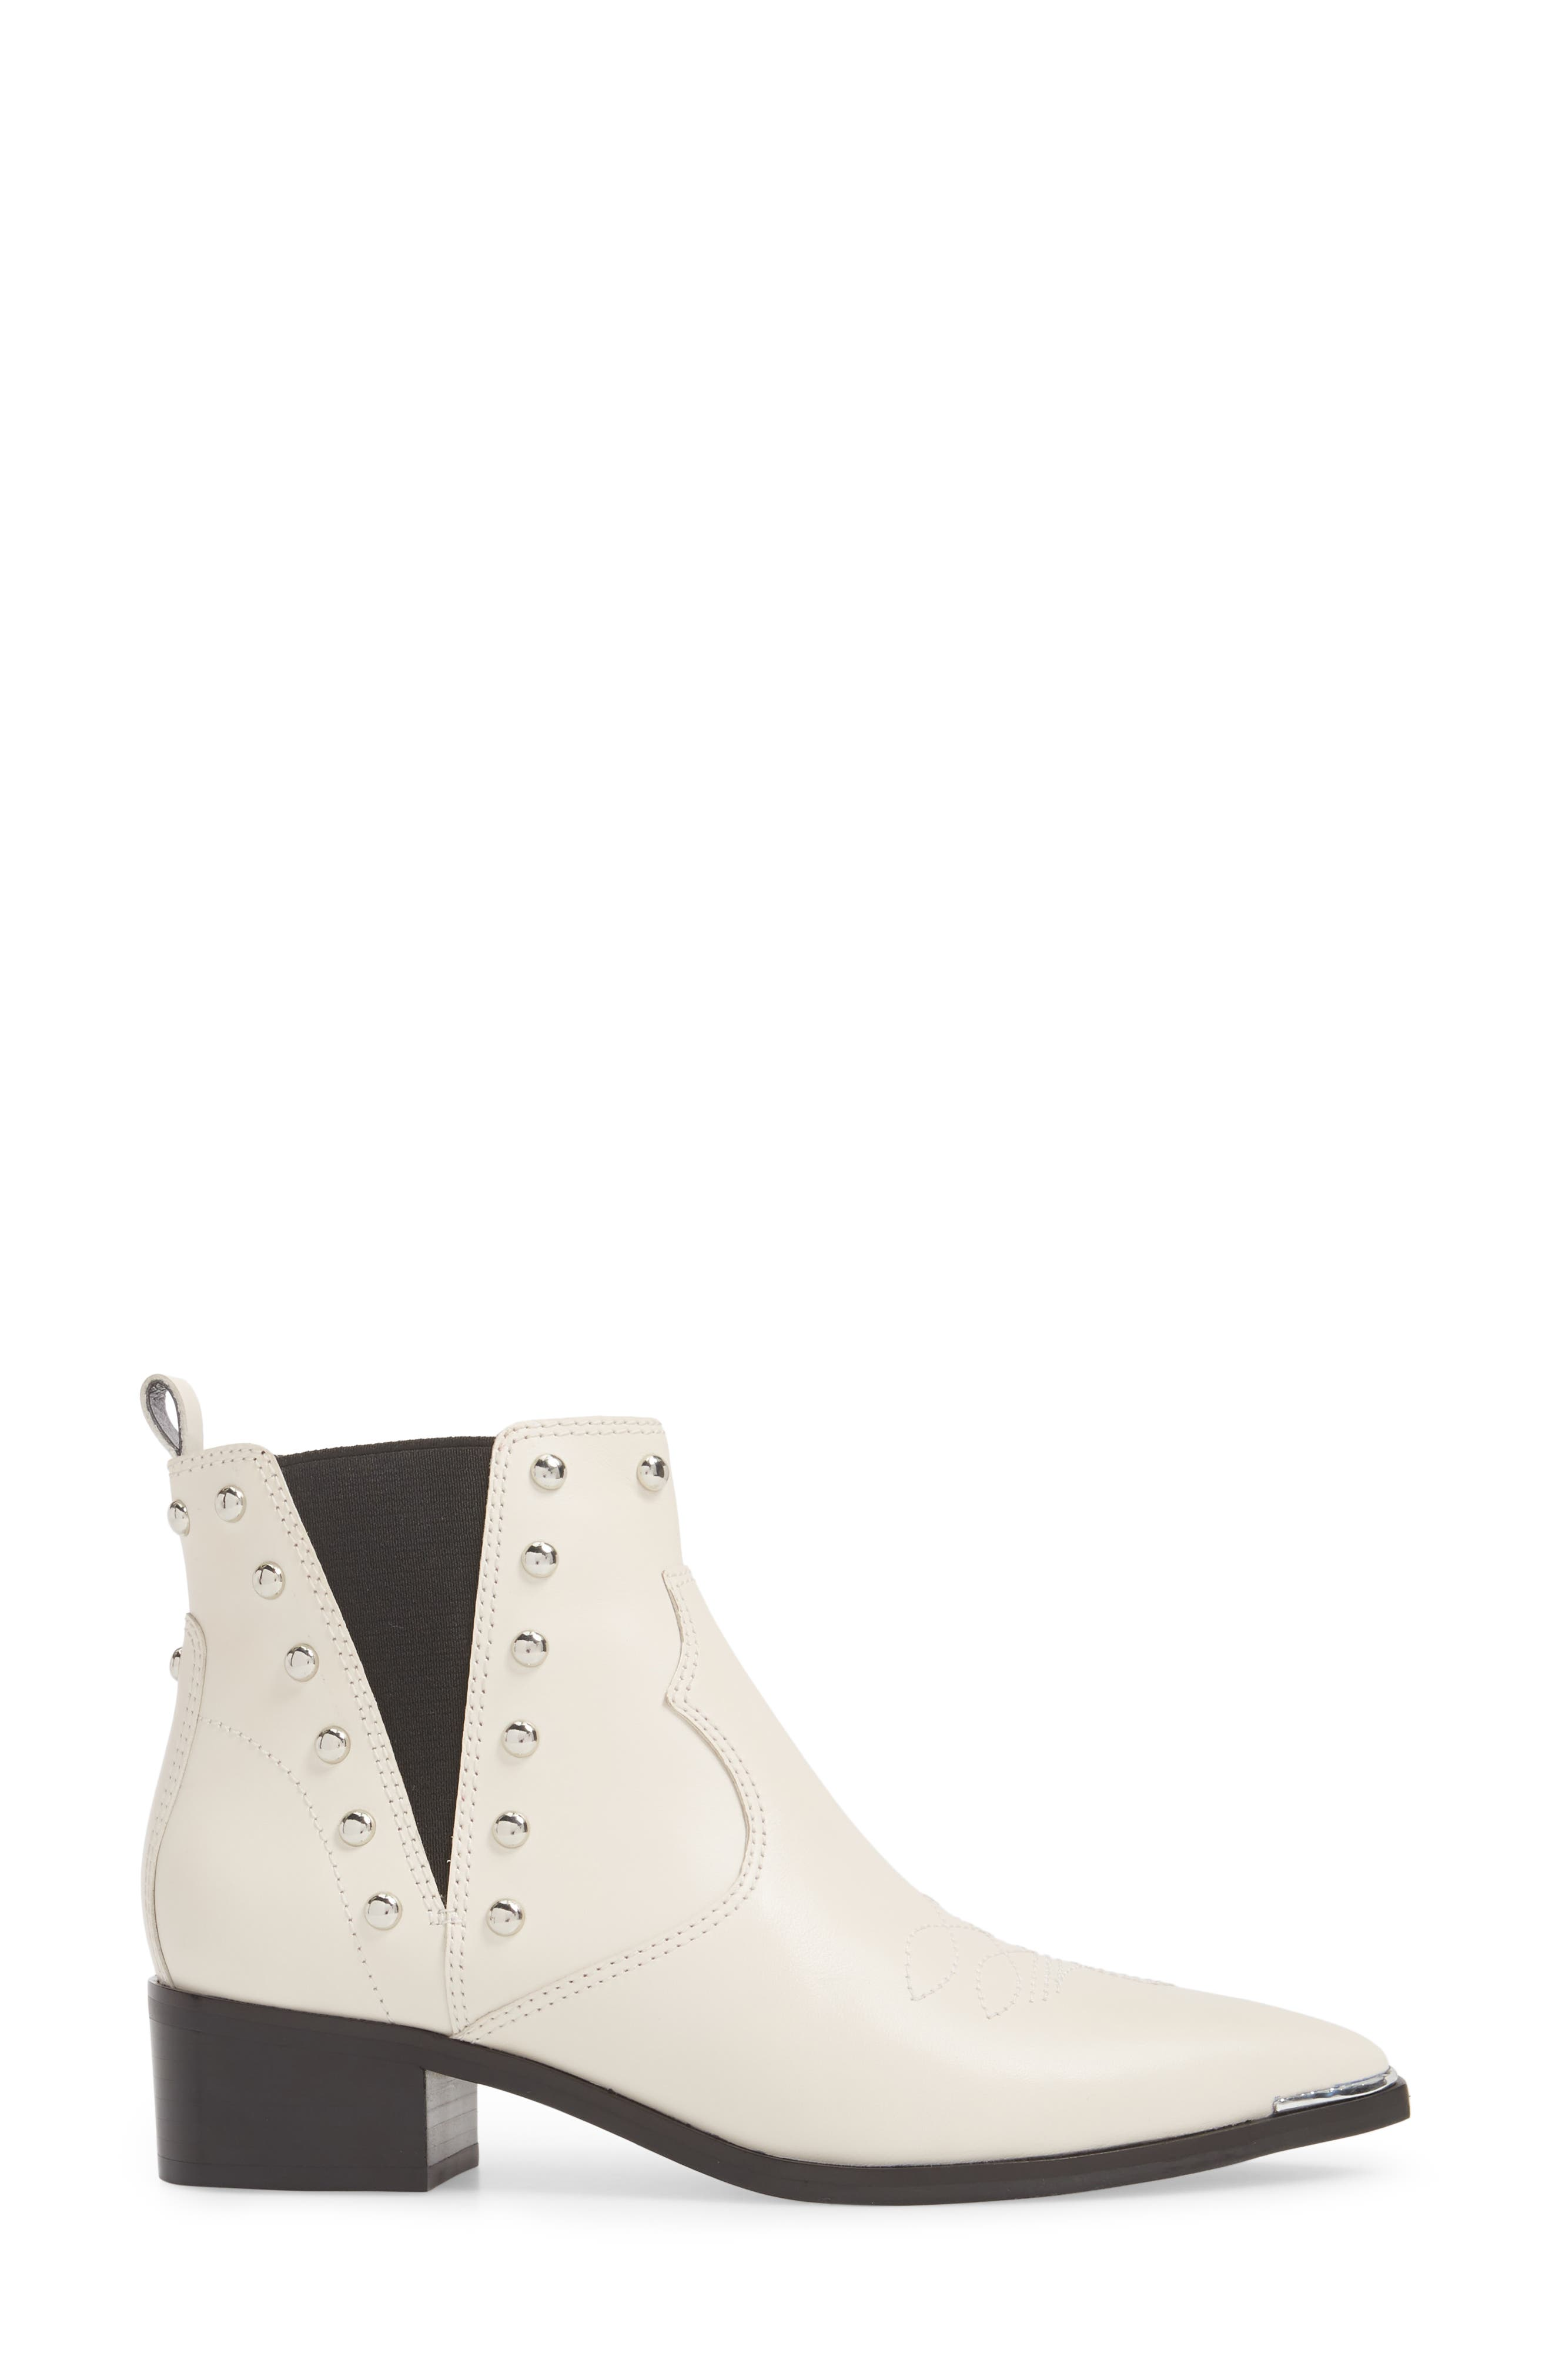 Yente Chelsea Boot,                             Alternate thumbnail 3, color,                             IVORY LEATHER